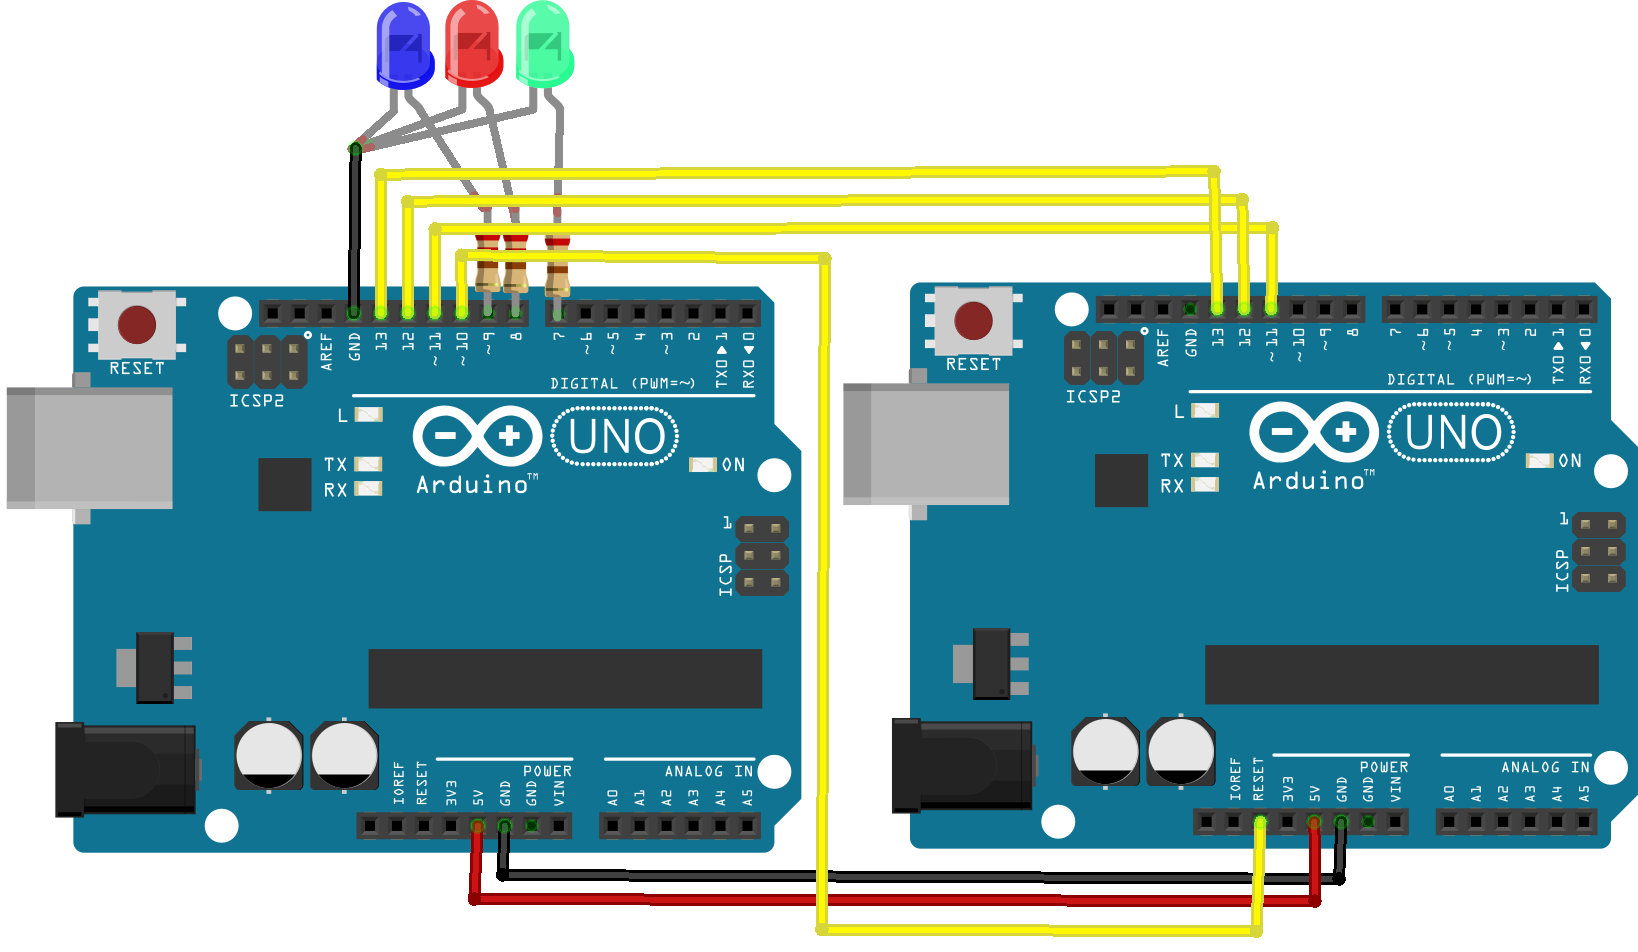 show the connection between two Arduinos. Pin 13-13, 12-12, 11-11, 10-rst, gnd-gnd, 5v-5v